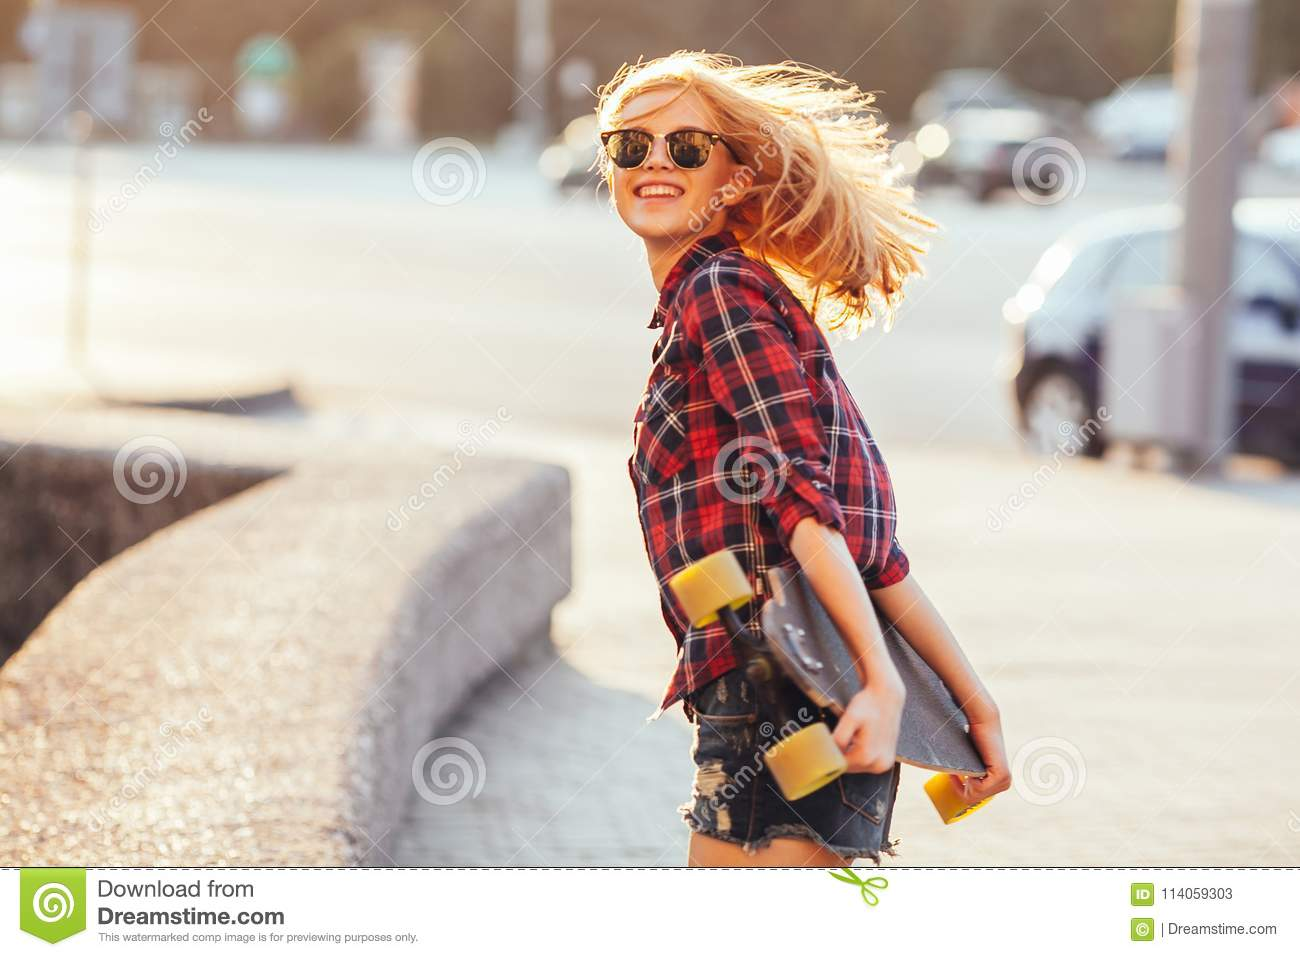 Download Sport Happy Girl Posing In Summer With Skateboard. Stylish Lucky Hipster Woman With Colorful Longboard In Sunset In Stock Image - Image of leisure, skater: 114059303